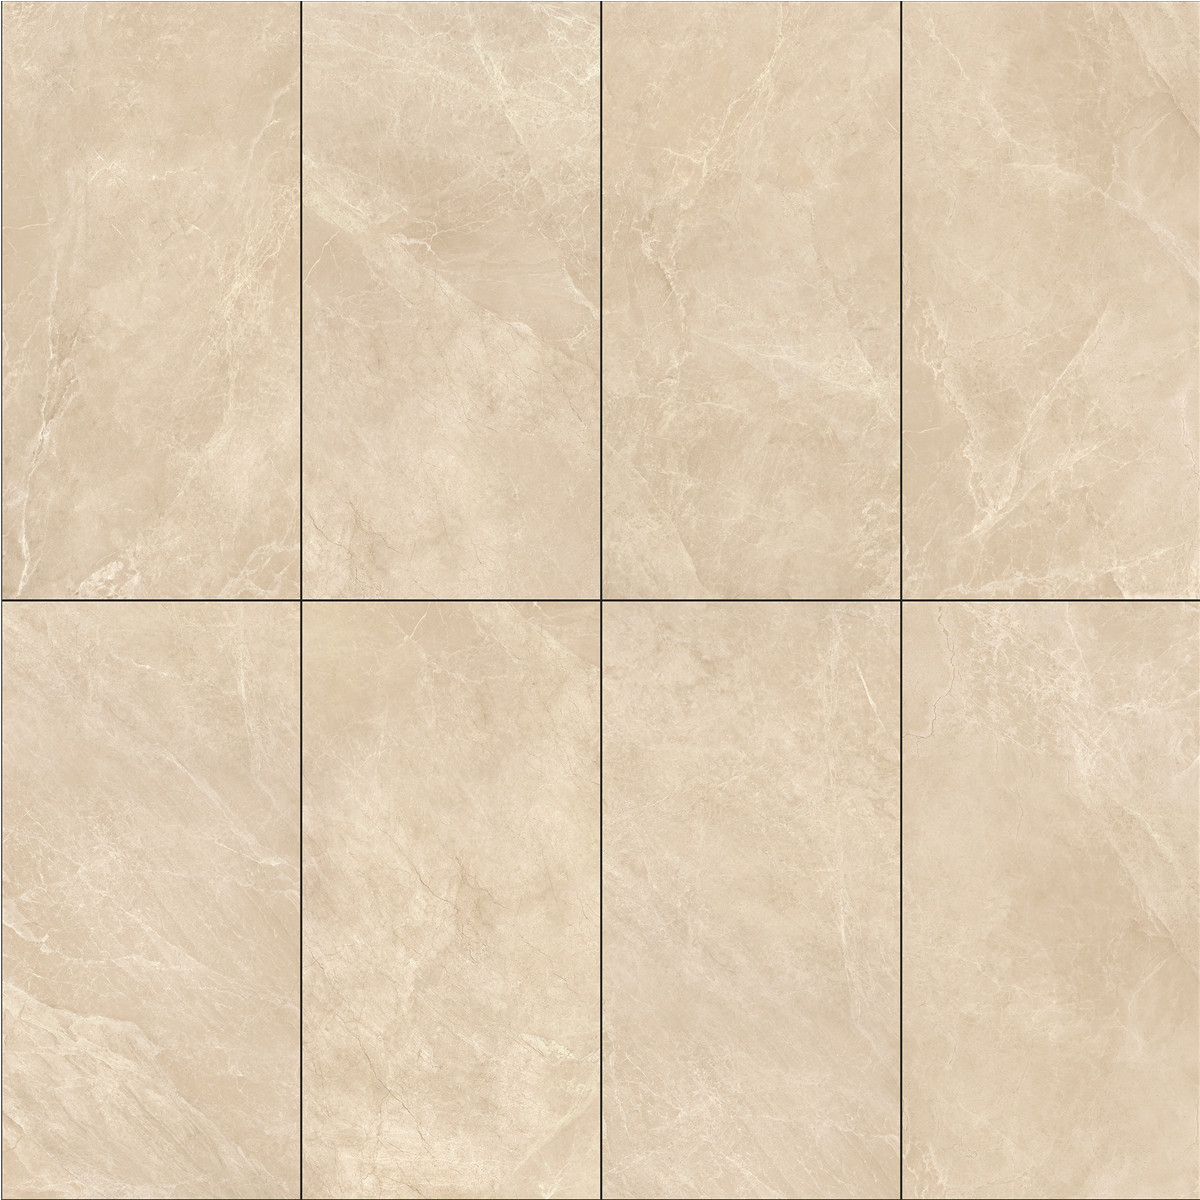 Supply Safari Beige Marble Tiles Factory Quotes Oem